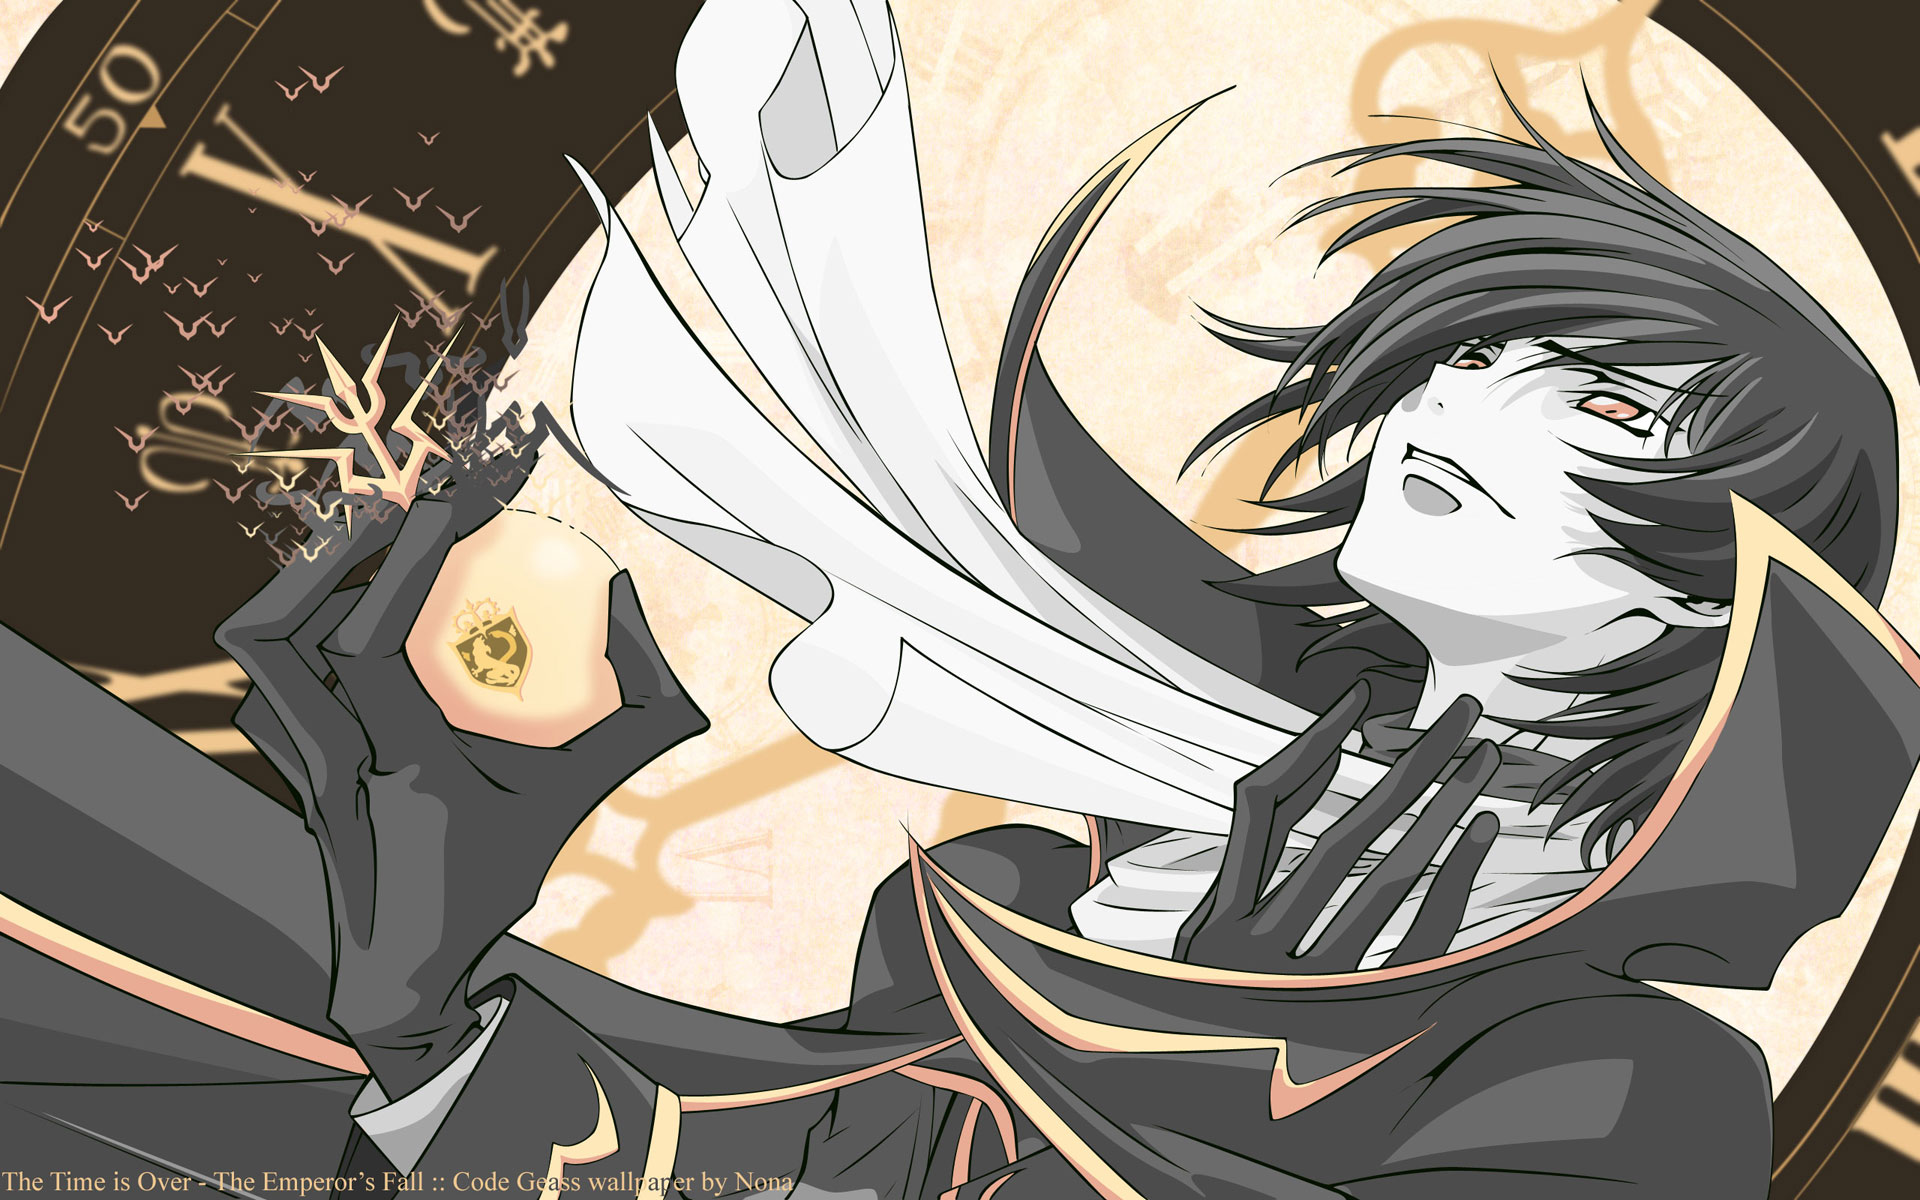 Christian Hd Wallpapers For Android Lelouch Lamperouge Hd Wallpapers